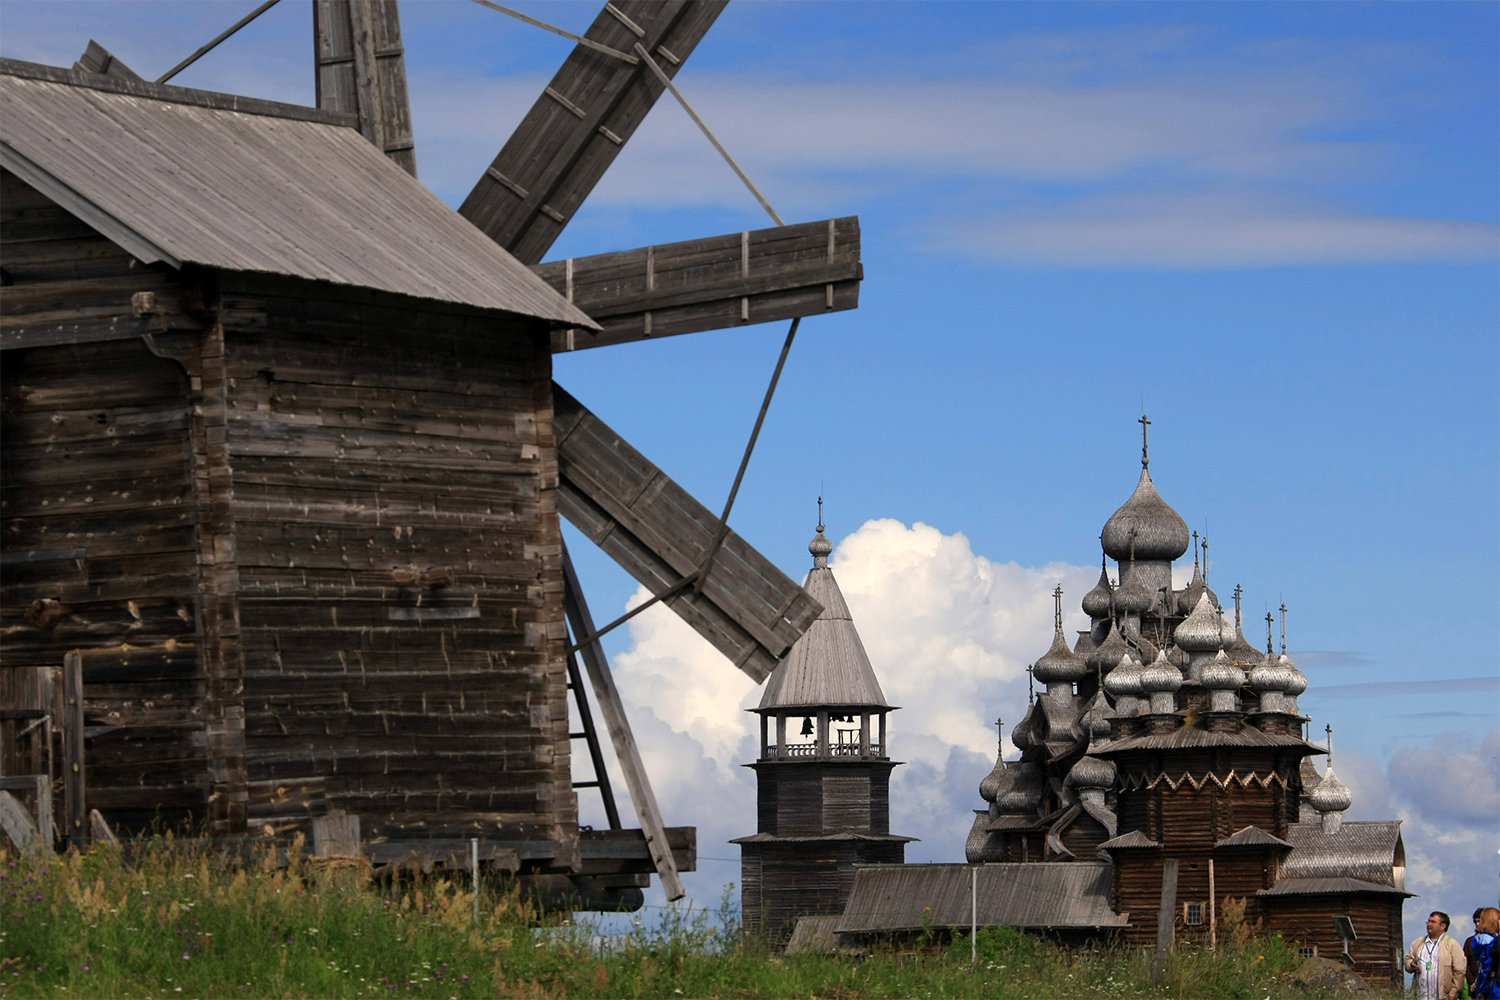 The Kizhi State History, Architecture and Ethnography Museum and Protected Nature Area